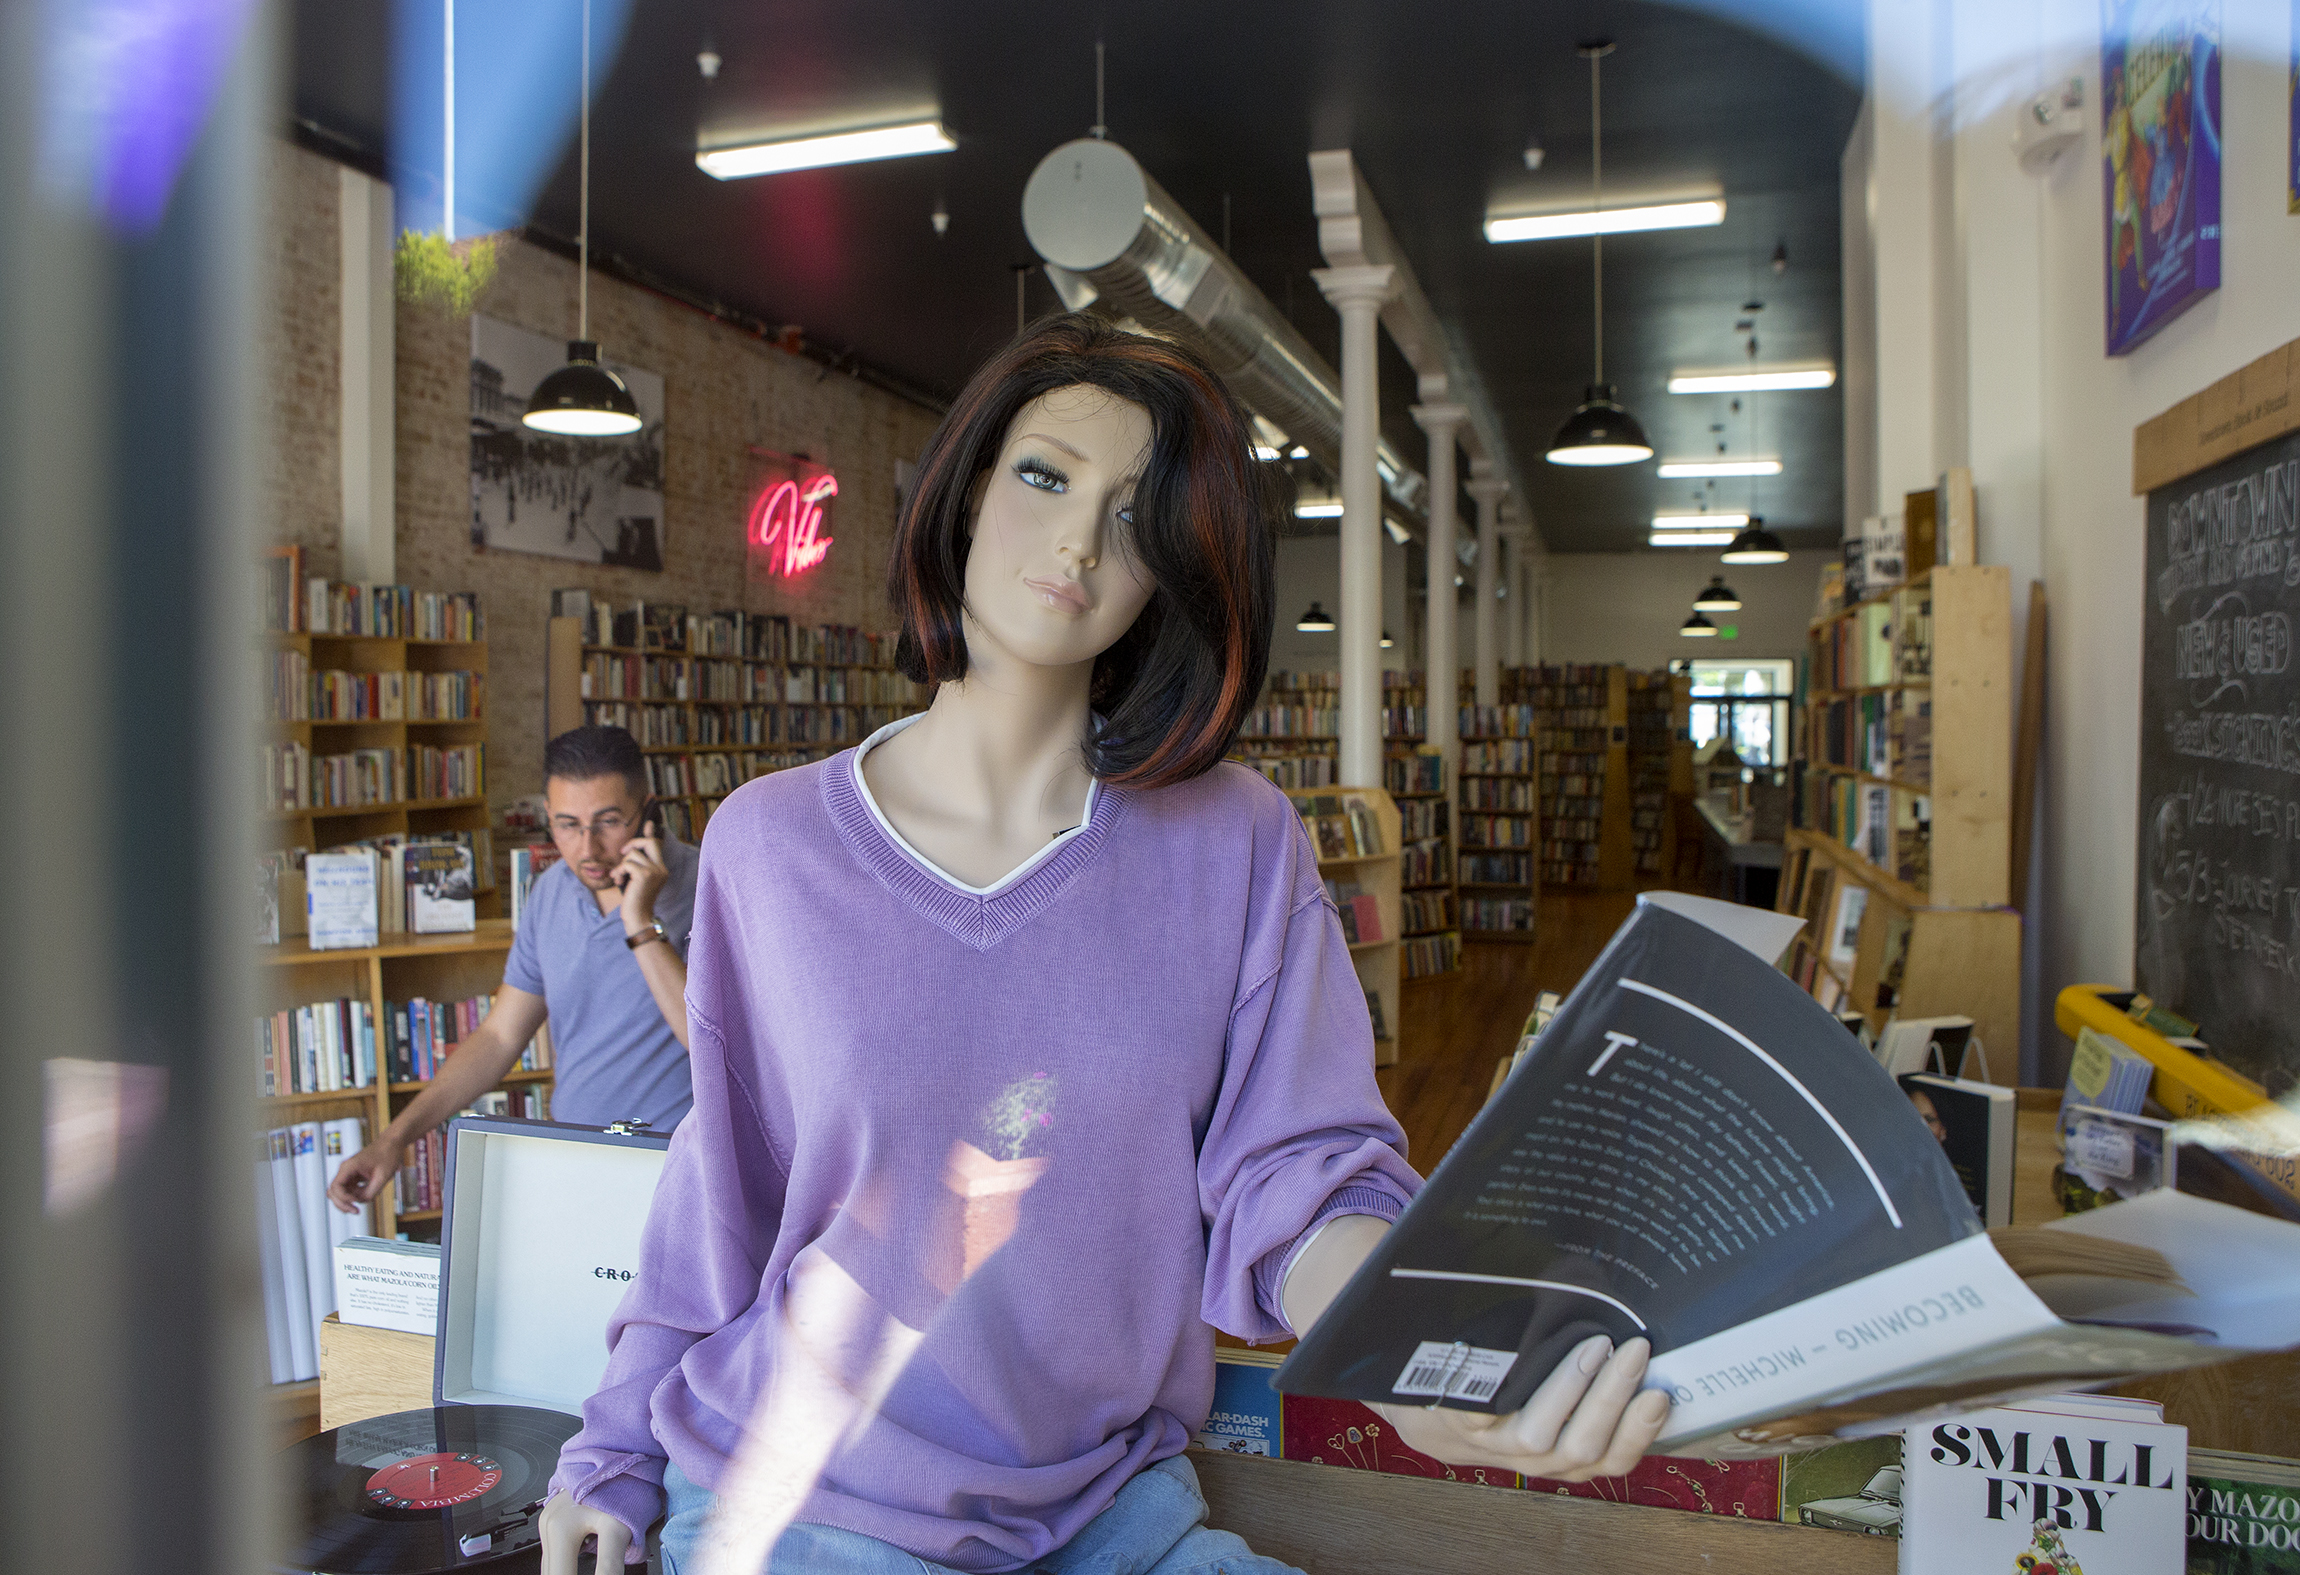 Downtown_Books-042319-6a